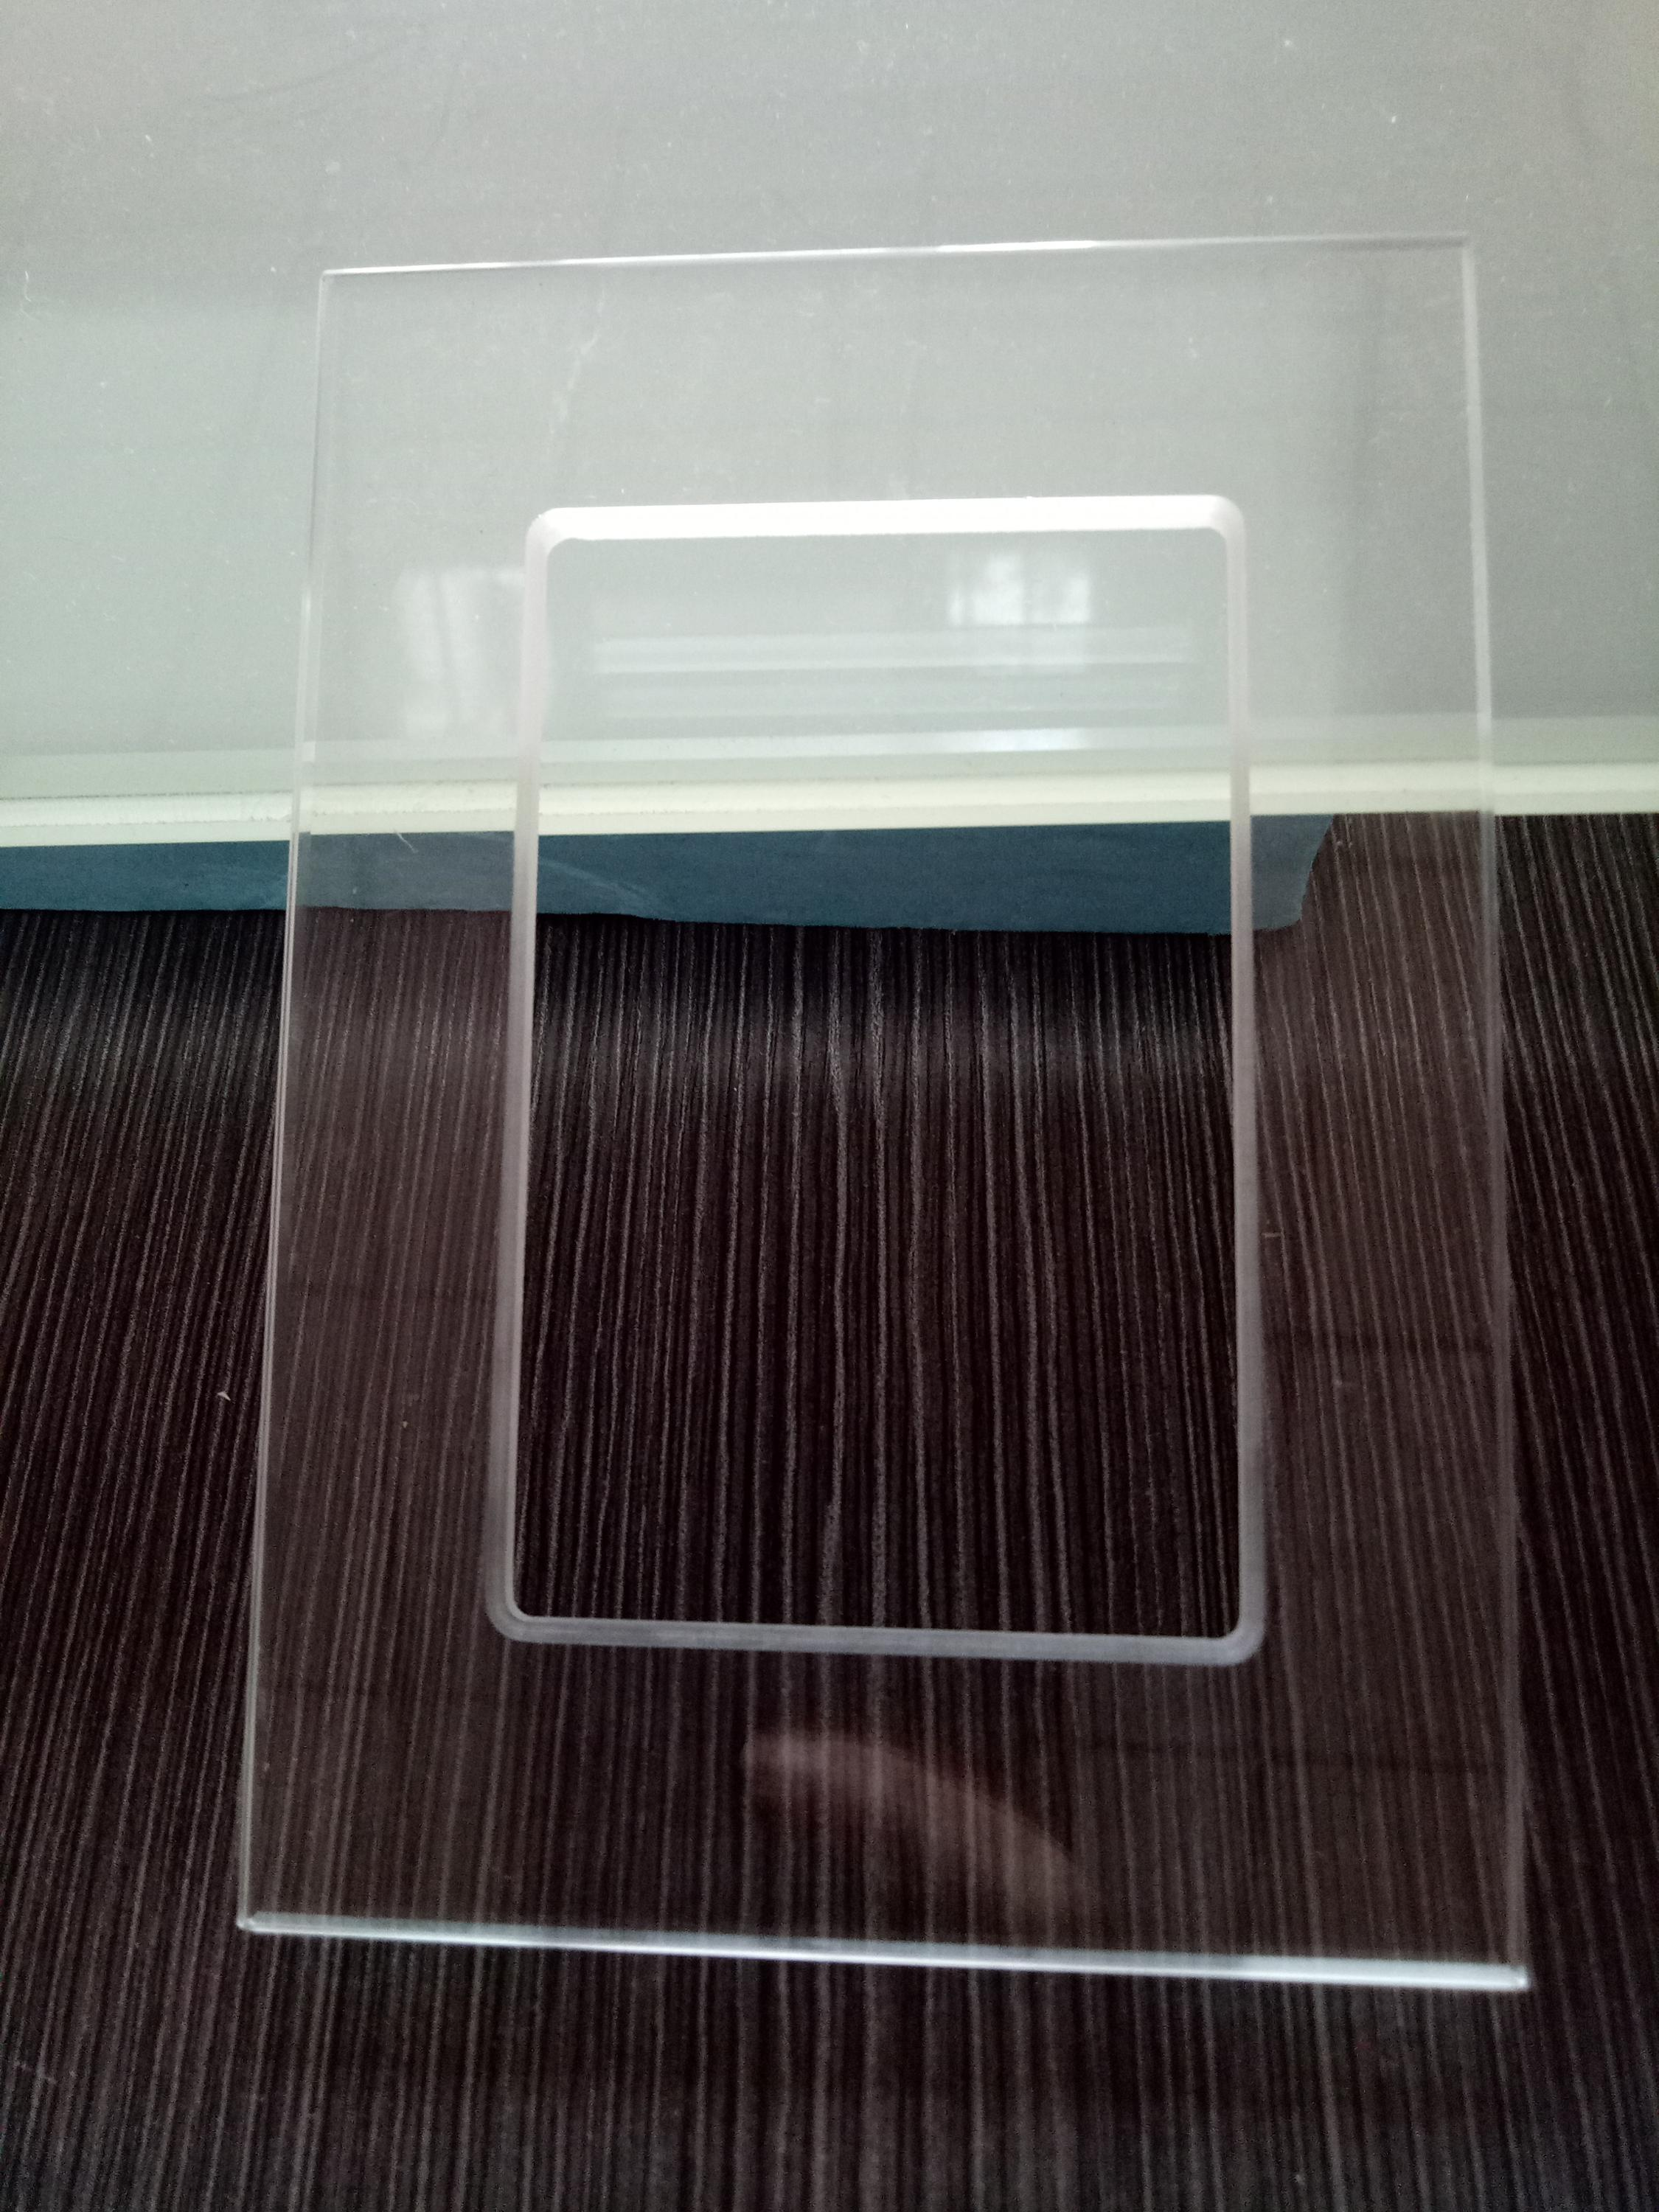 China factory 3-25mm ultra clear low iron tempered glass